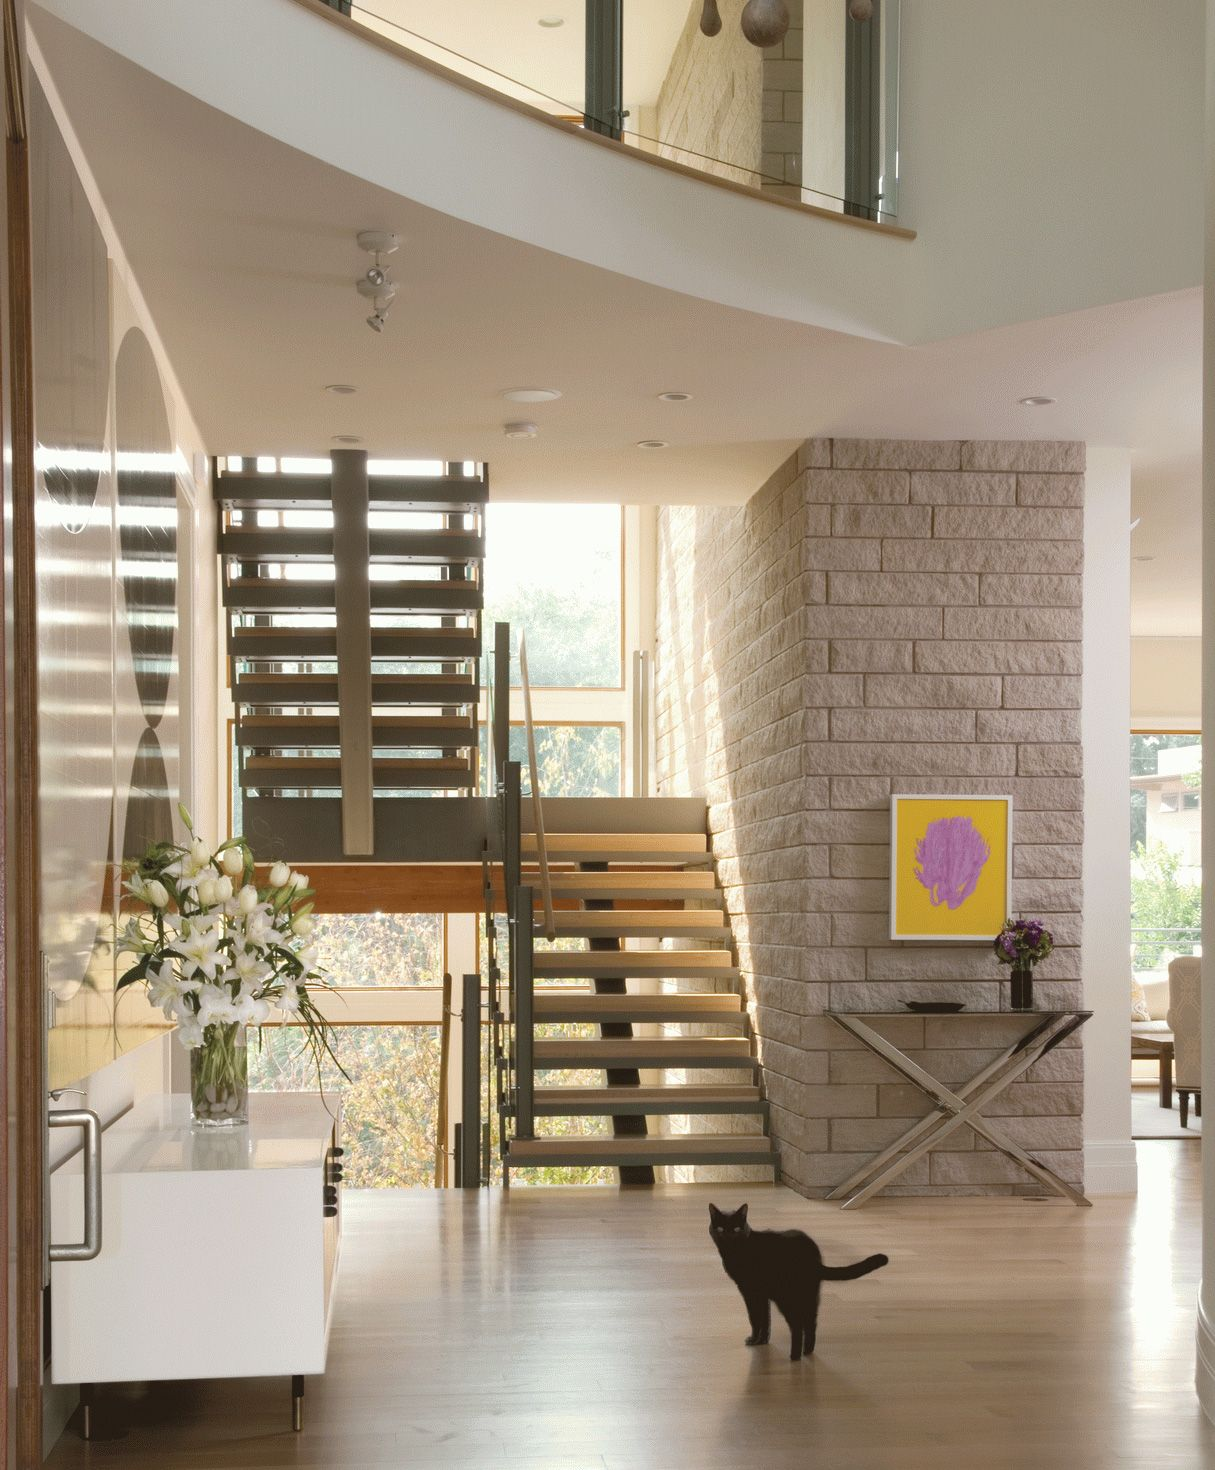 general  picture modern staircase  resourcedir home directory  - general  picture modern staircase  resourcedir home directory